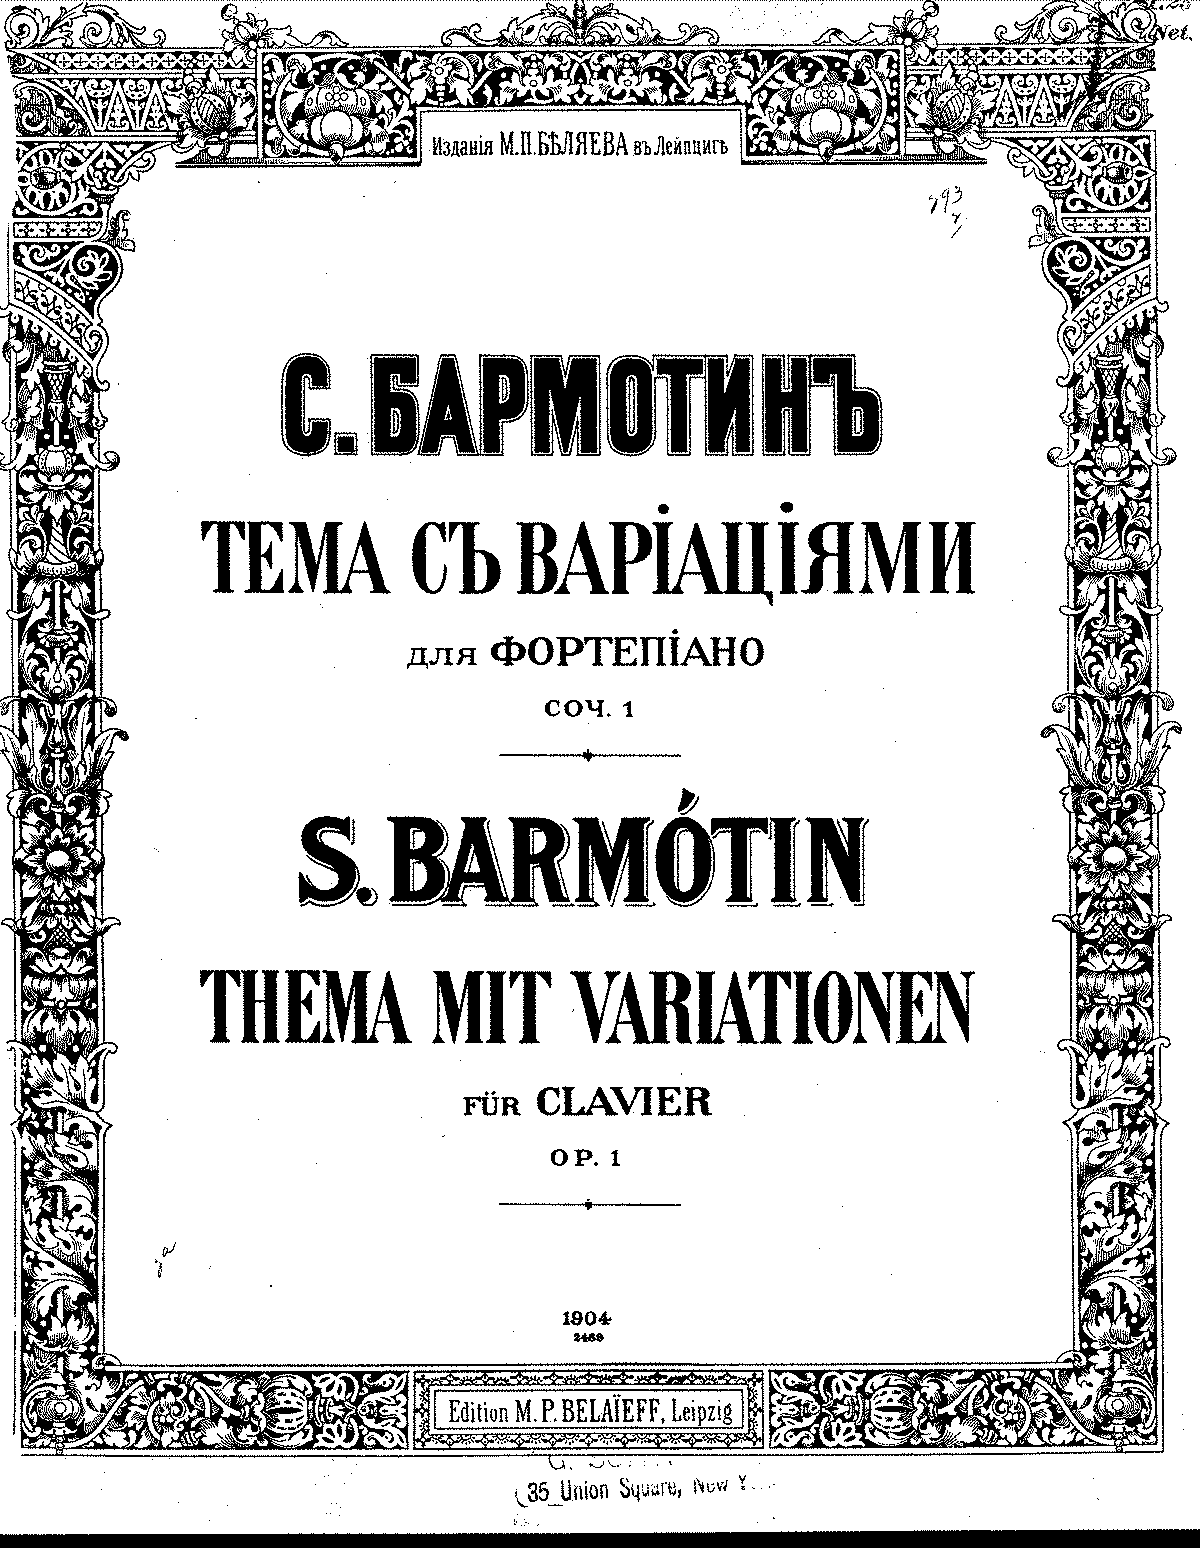 Barmotin, Semen - Theme with variations, Op.1.pdf